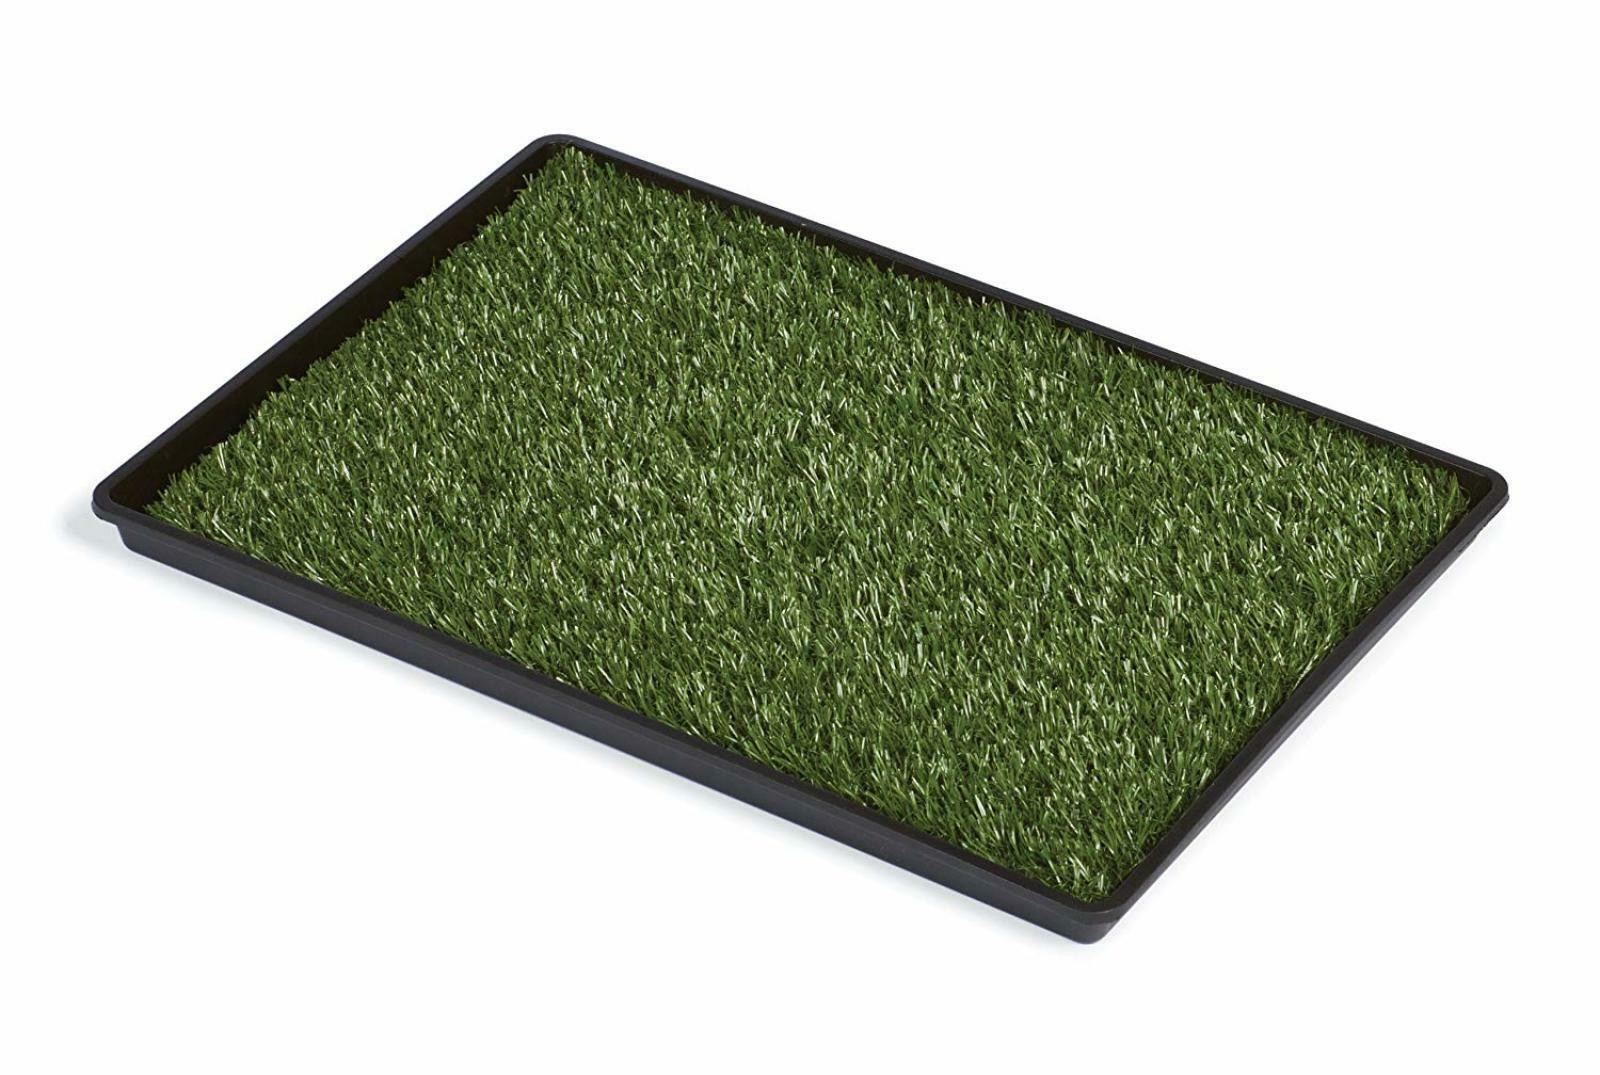 Artificial Turf For Dogs 41x 28.5  Large Fake Grass for Dogs Potty Training Area